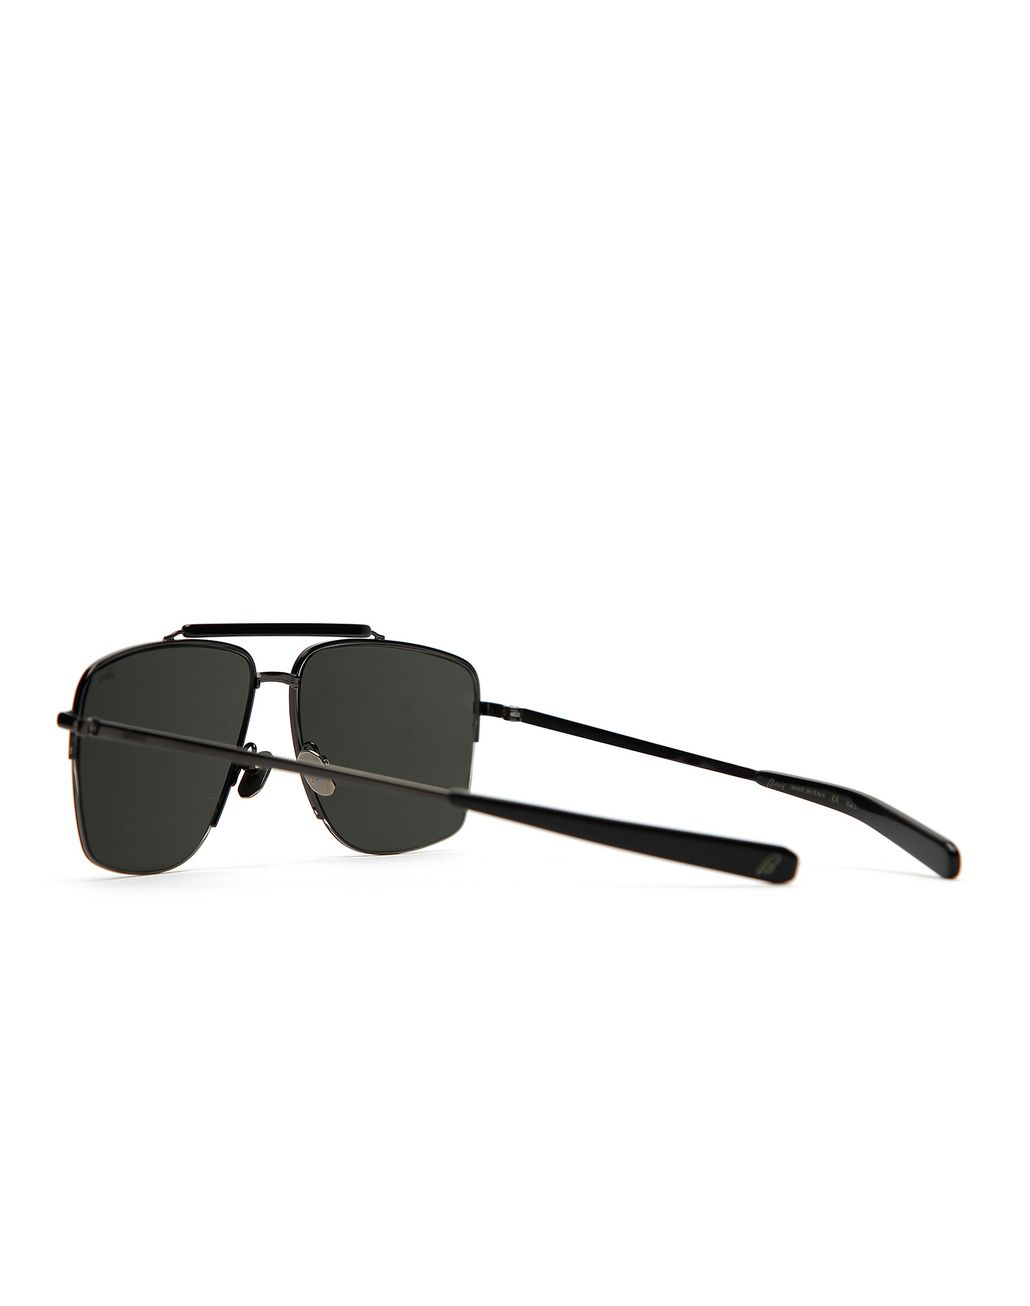 BRIONI Gunmetal and Black Caravan Sunglasses with Grey Lenses Sunglasses [*** pickupInStoreShippingNotGuaranteed_info ***] d